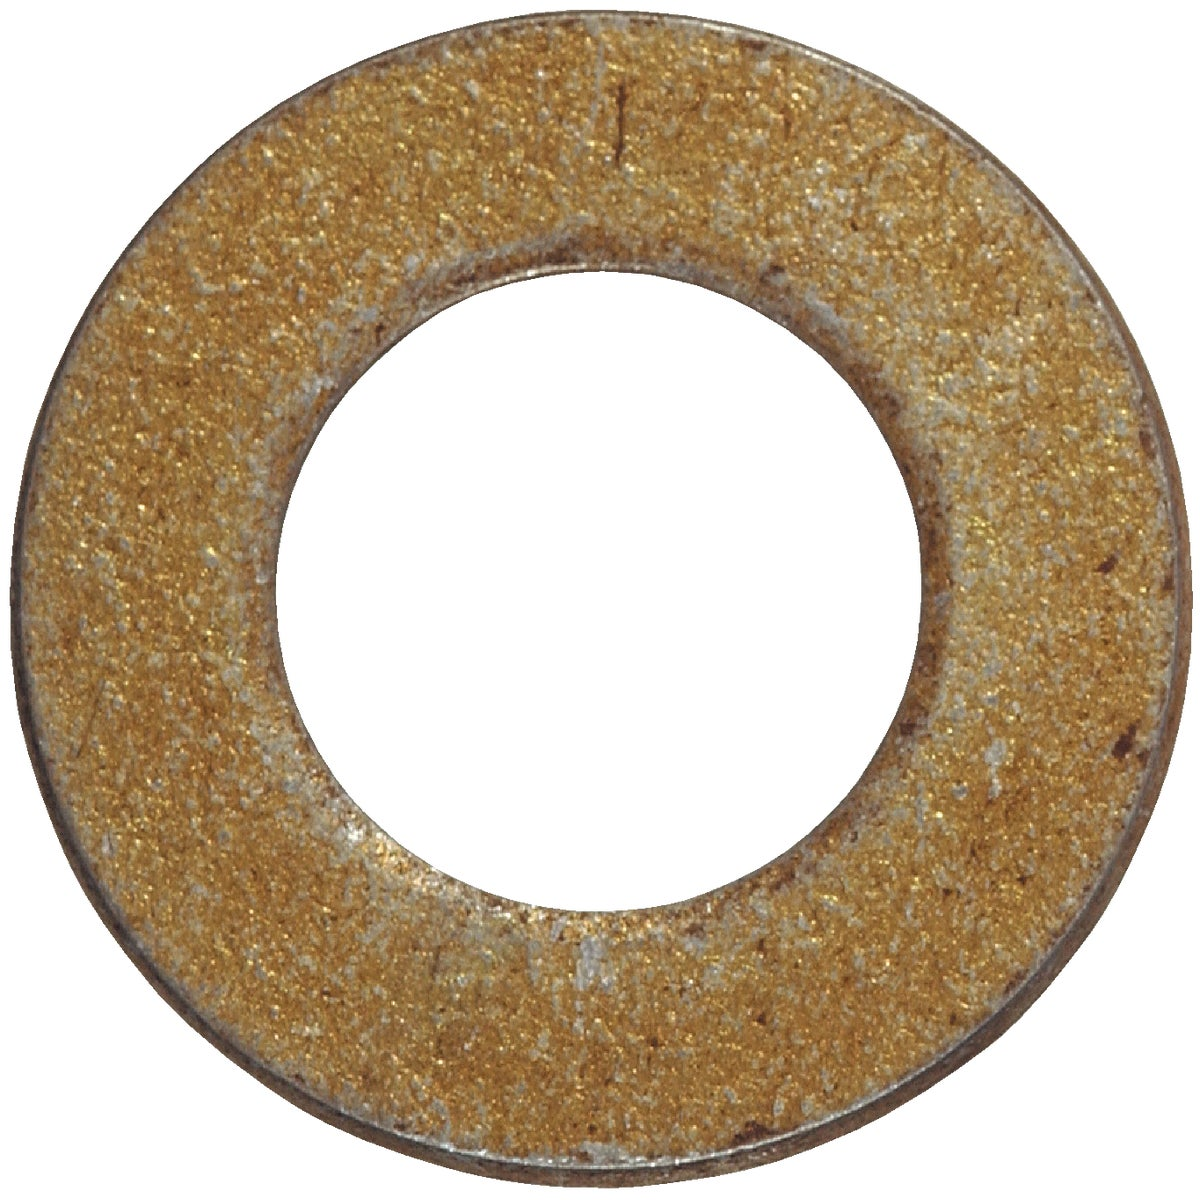 "1"" SAE FLAT WASHER - 280334 by Hillman Fastener"